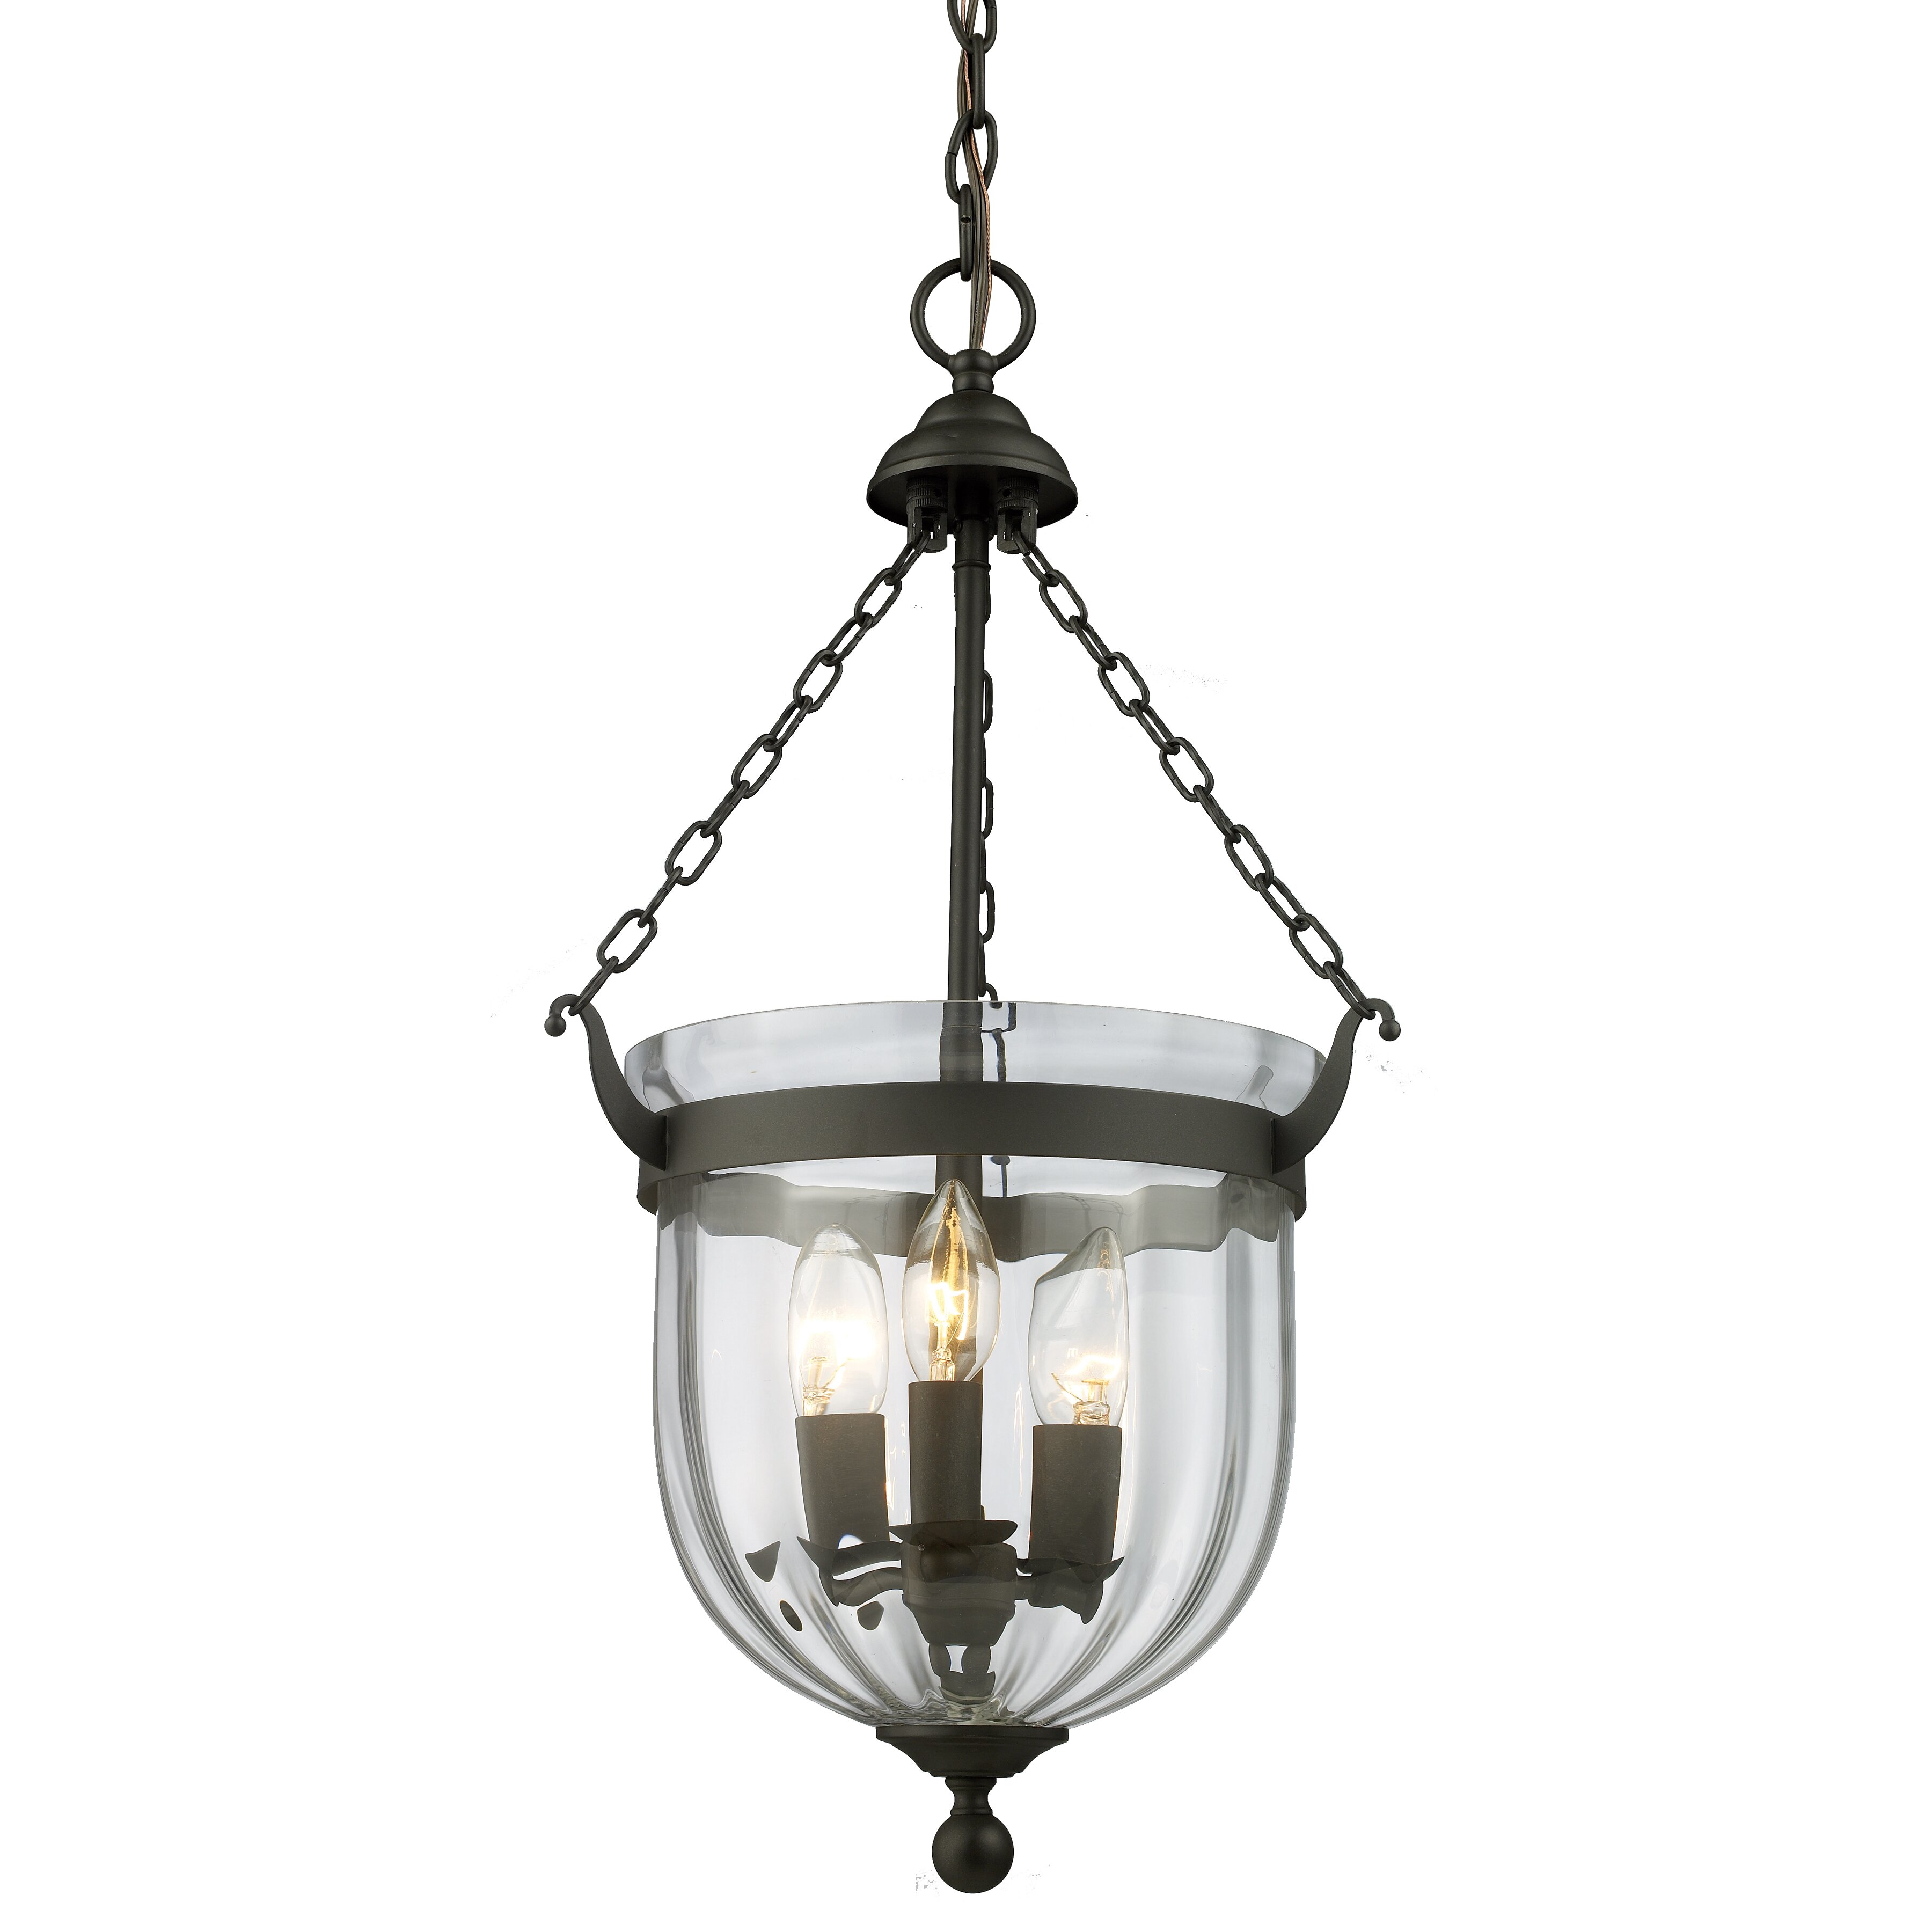 white foyer pendant lighting candle. Z Lite 3 Light Warwick Foyer Pendant Reviews Wayfair White Lighting Candle